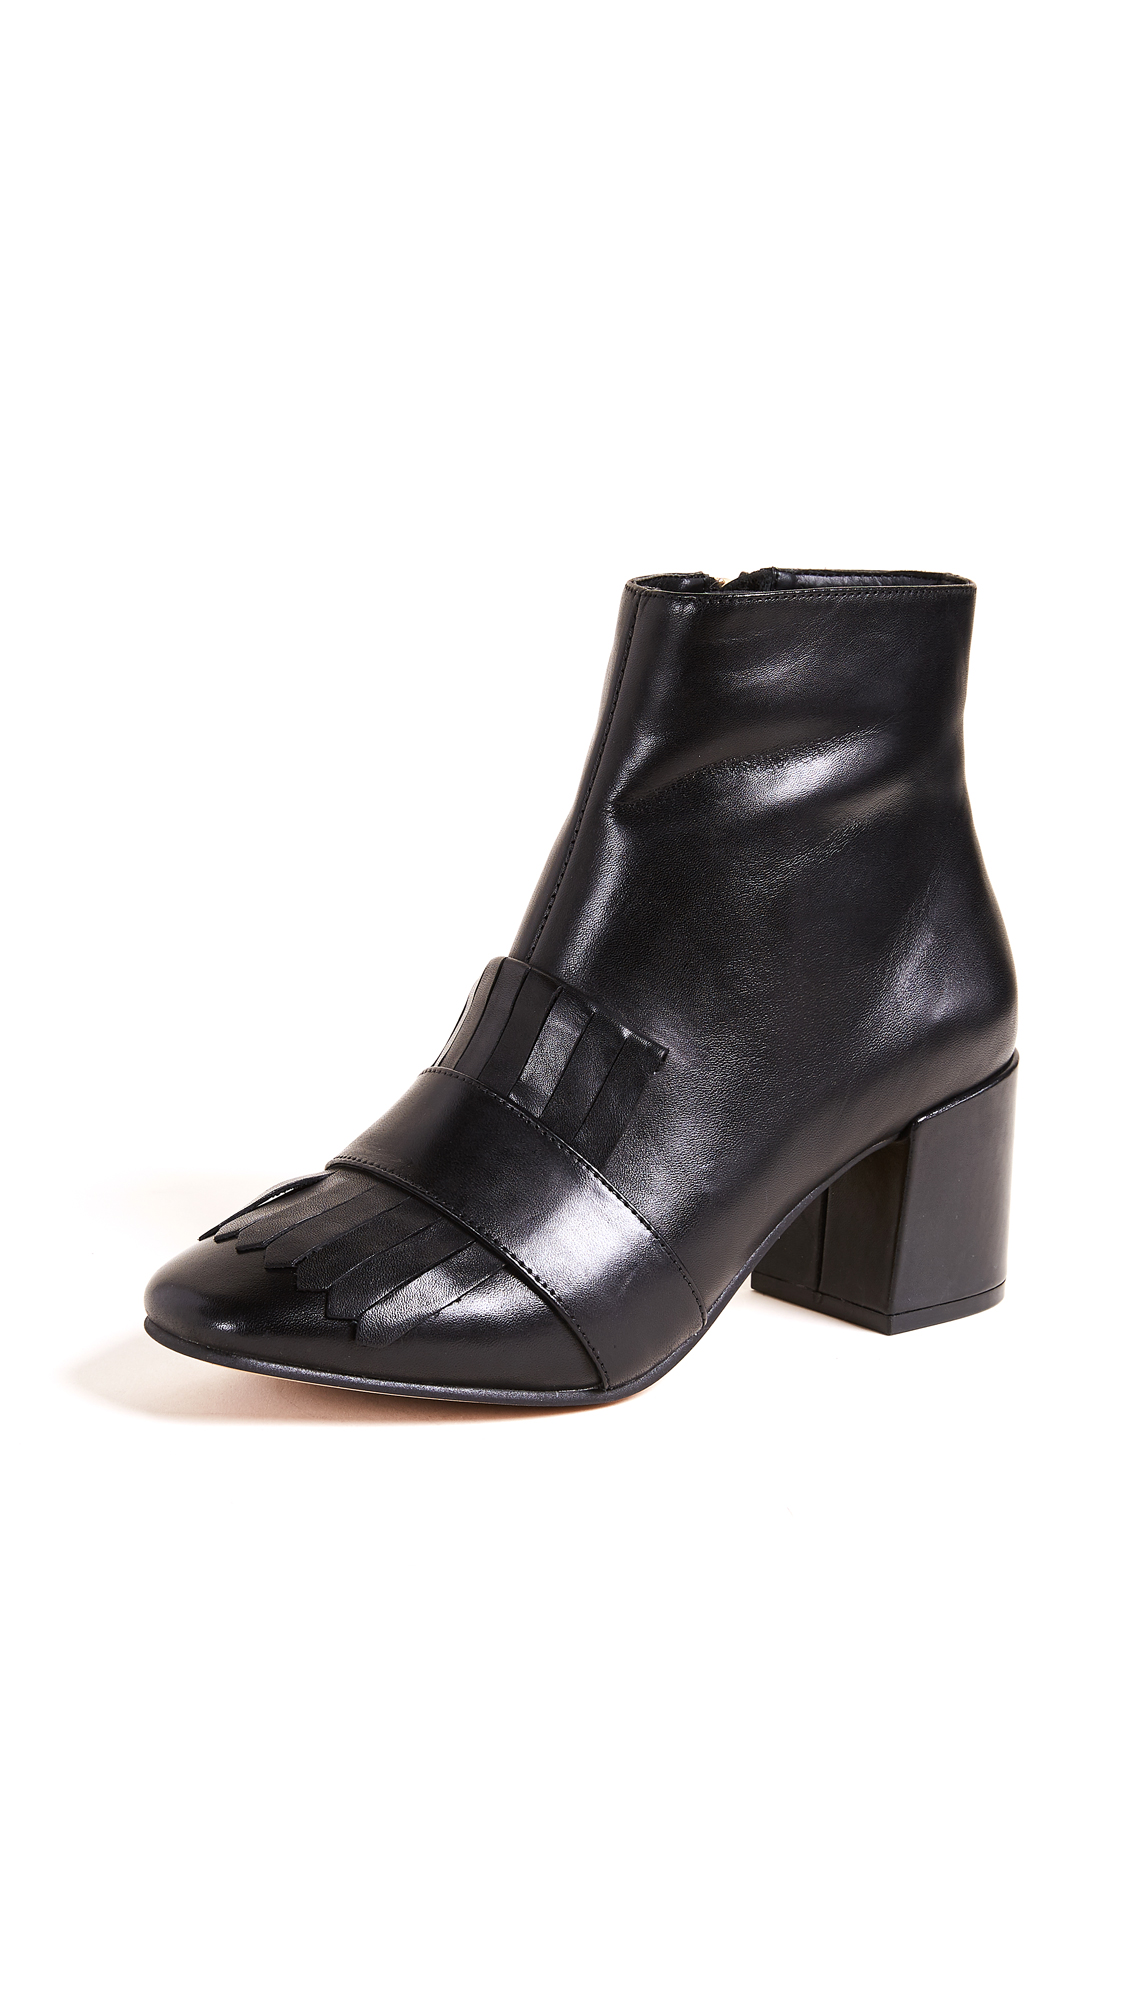 Steven Serlina Block Heel Boots - Black